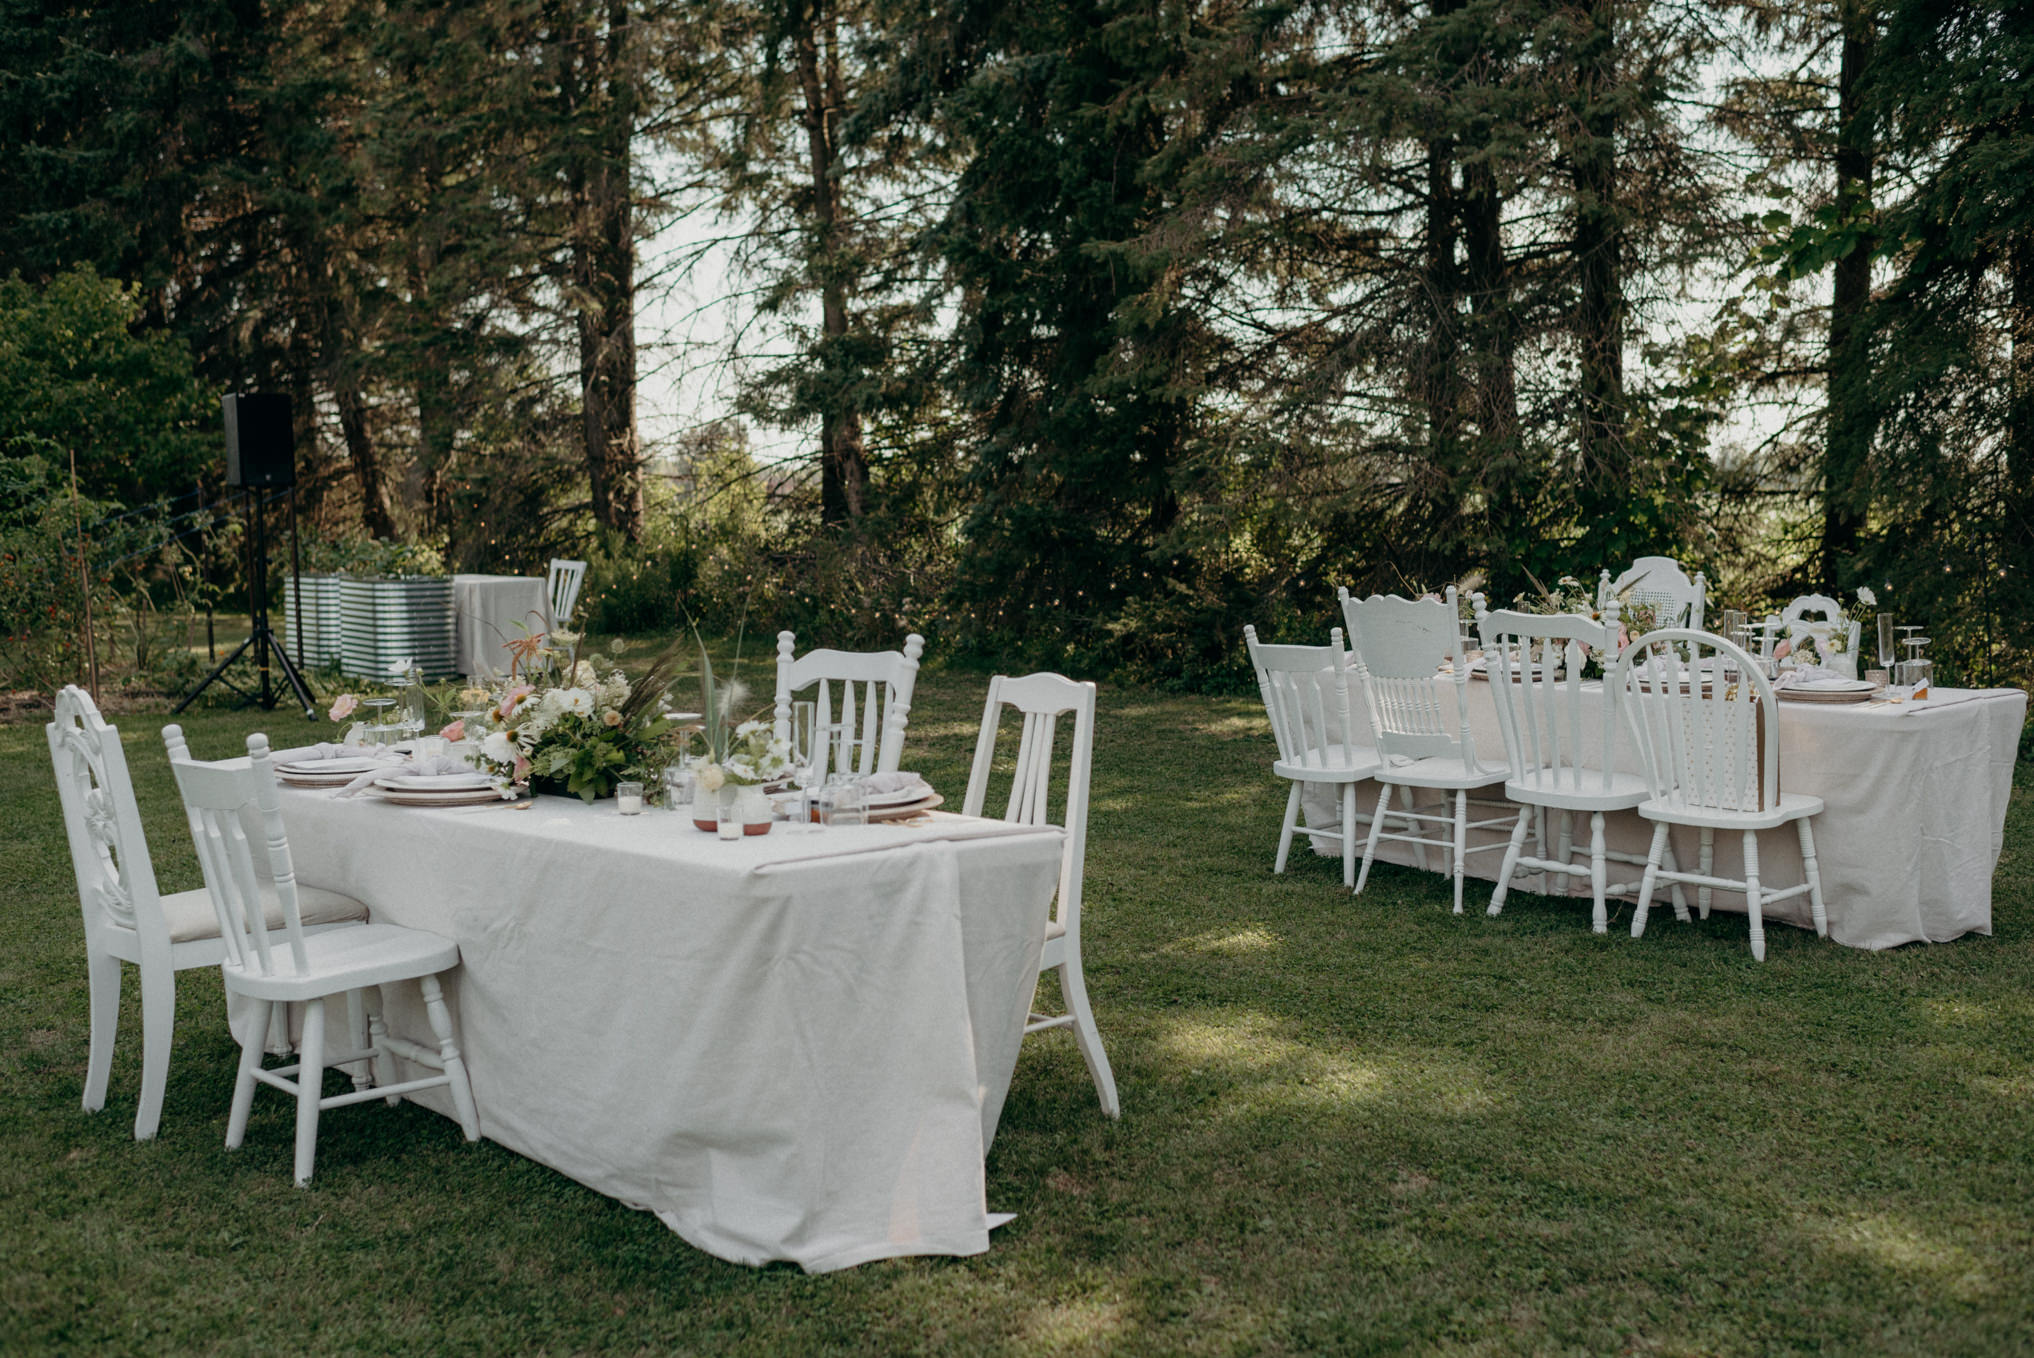 tables with white linens and chairs set up on grass garden for outdoor wedding